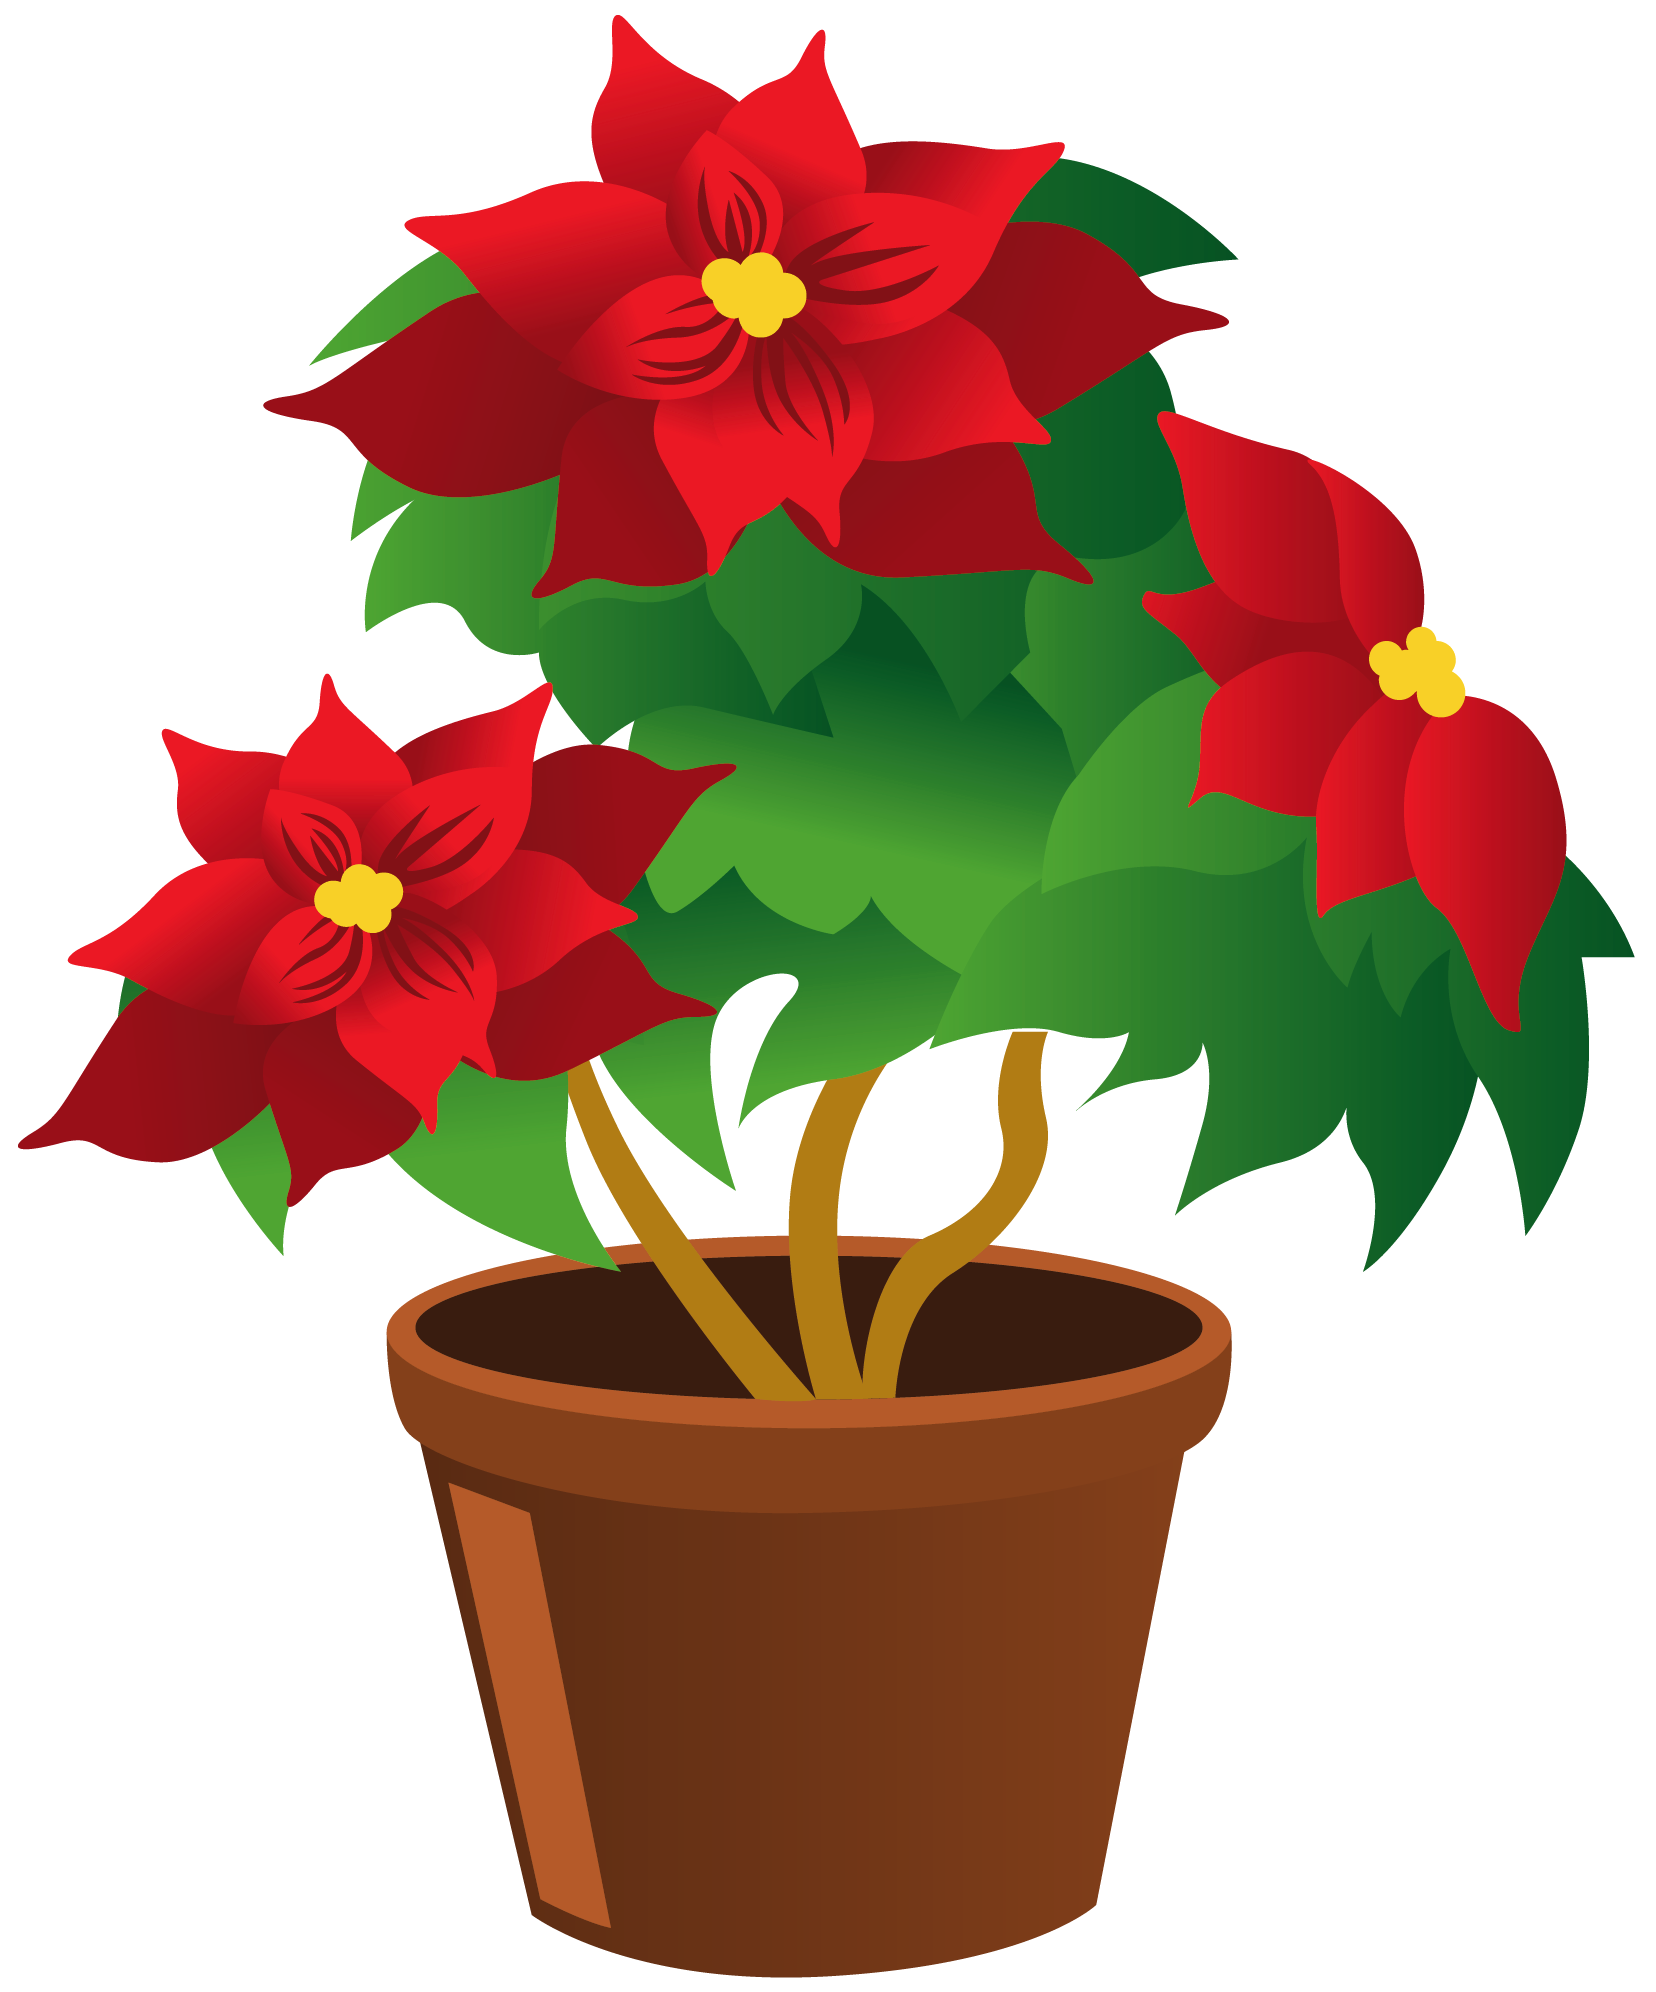 Plants flowers clipart graphic freeuse stock Pin by Wali Associates on Free | Flower pots, Flowers, Clip art graphic freeuse stock